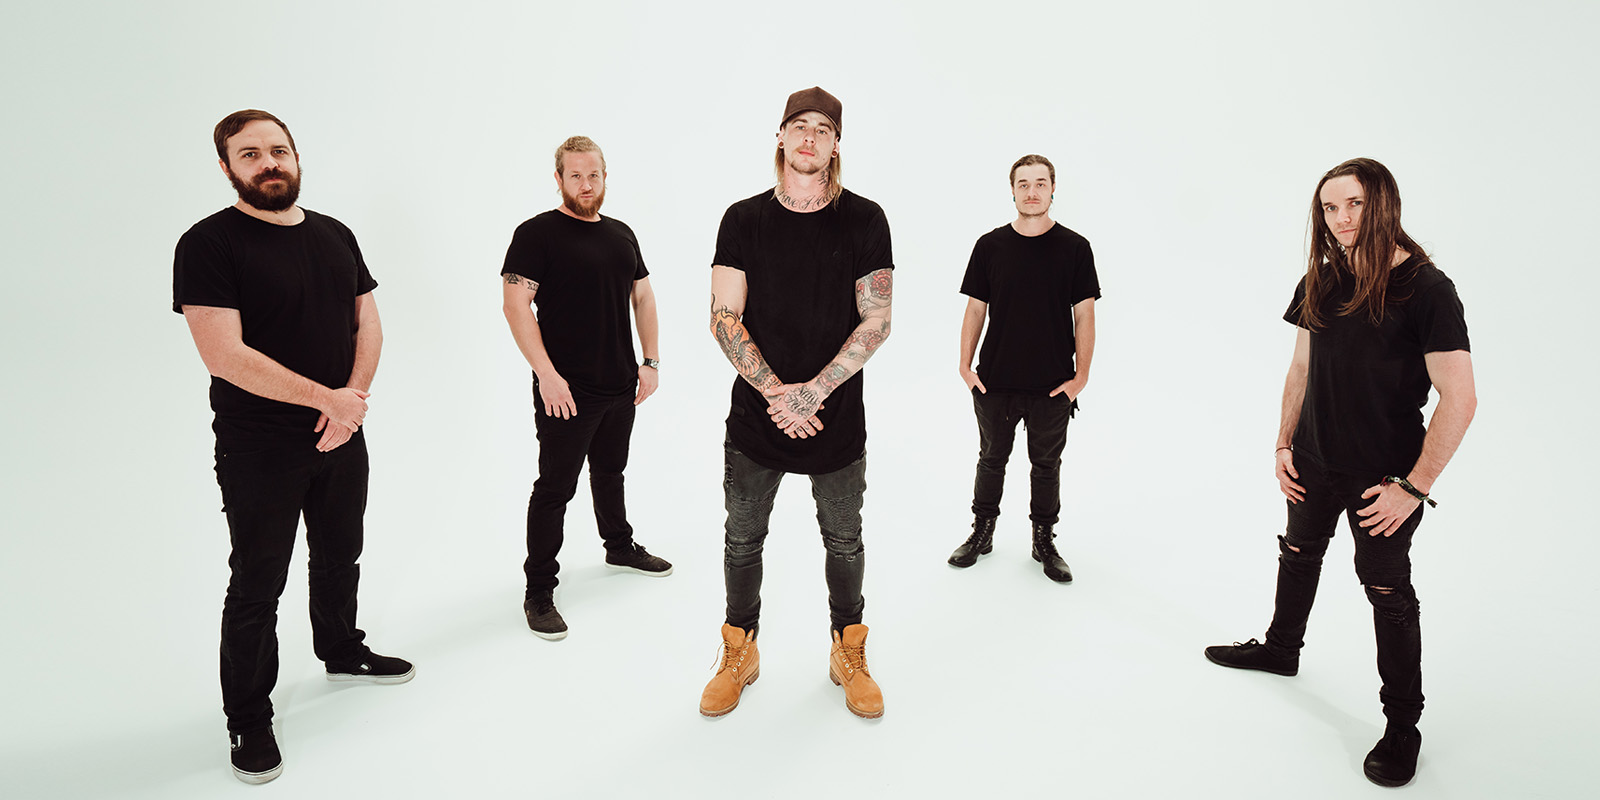 A Breach of Silence band biography, streaming music, exclusive downloads, videos, tour dates, merchandise, official links, and more metalcore alternative heavy metal music at Eclipse Records